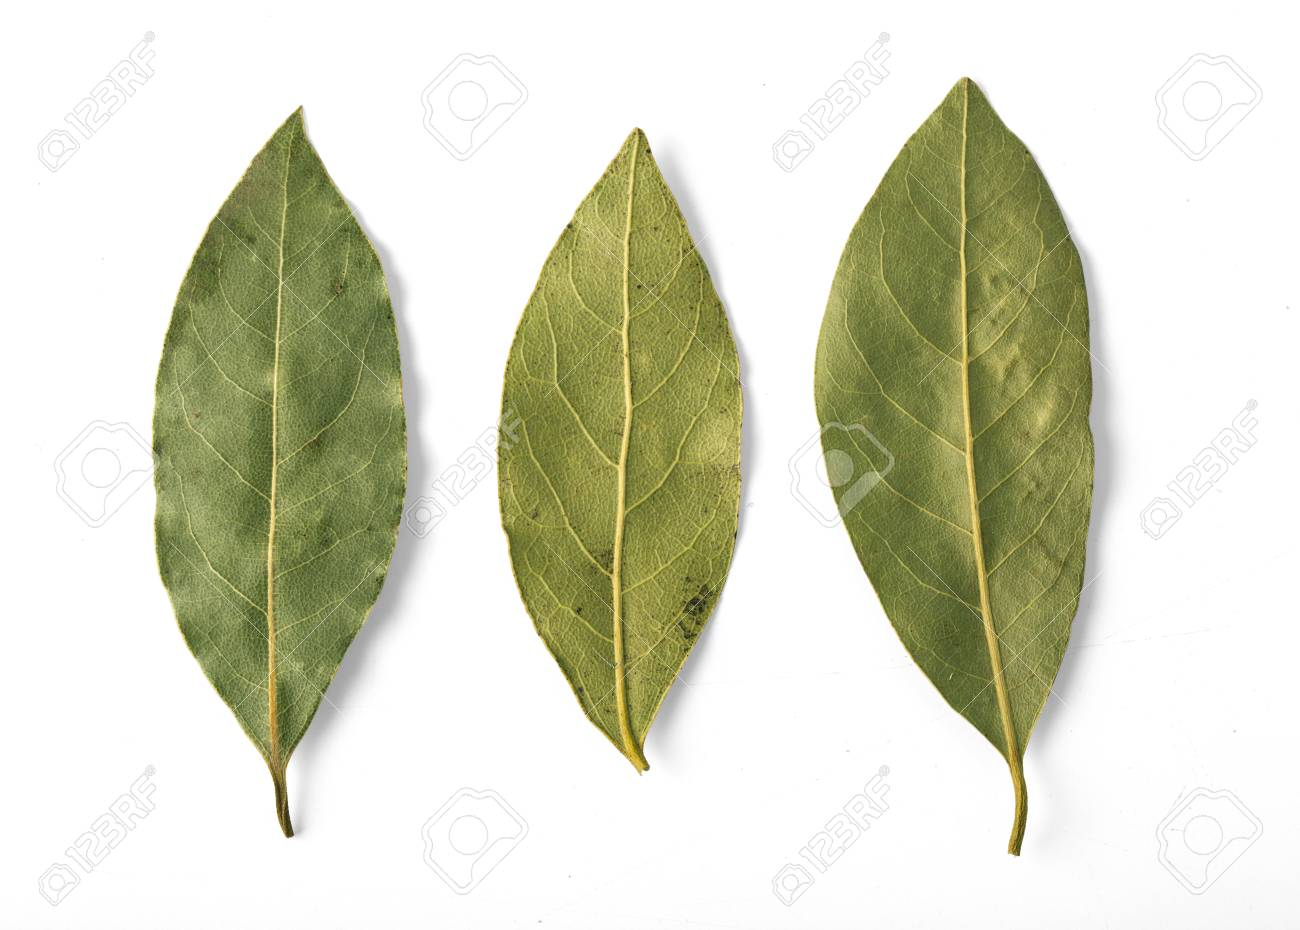 Dried bay leaves isolated on white with clipping path - 65381128